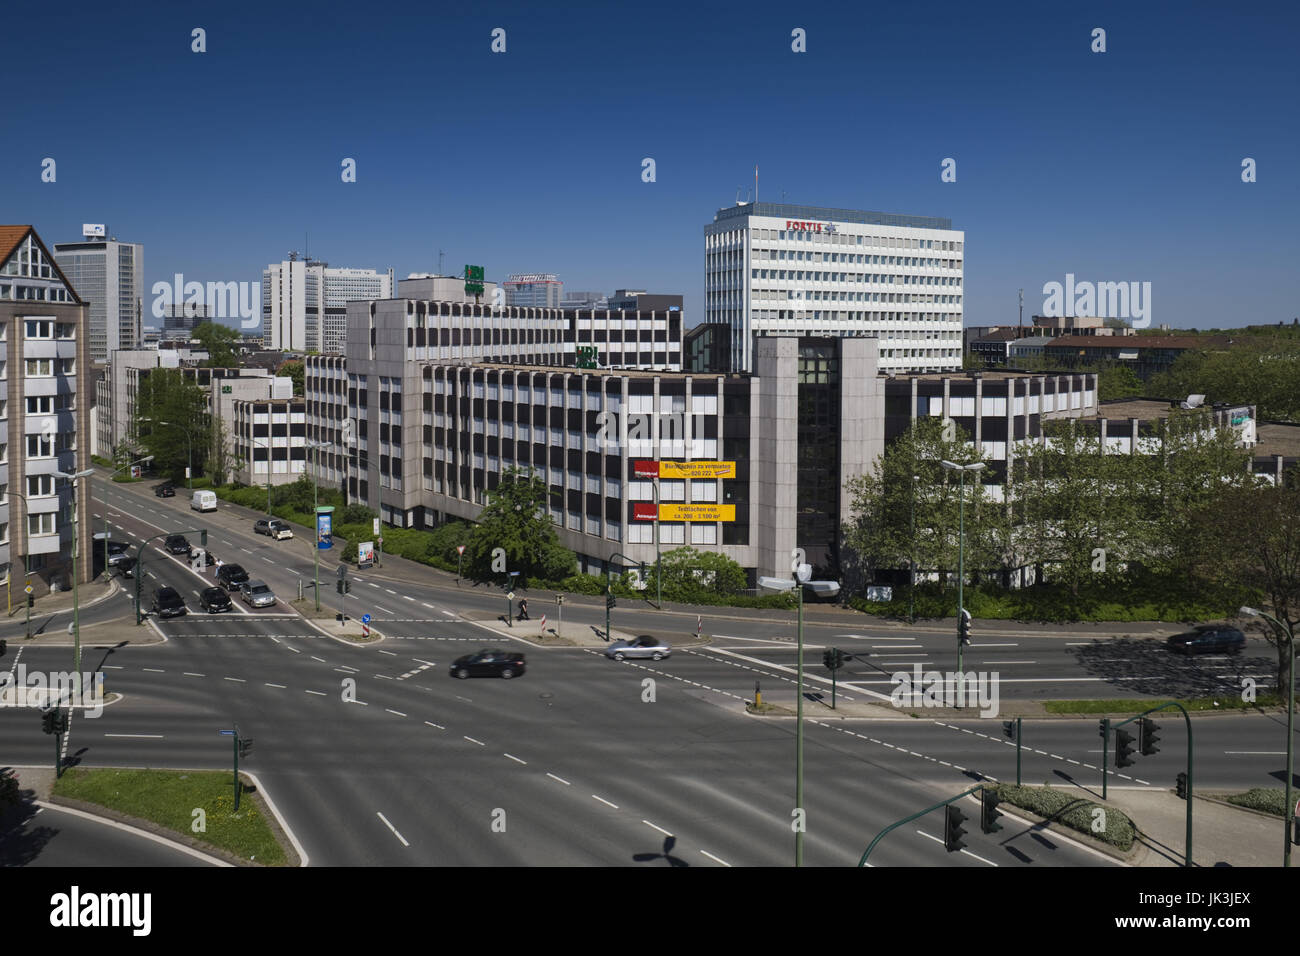 Germany, Nordrhein-Westfalen, Ruhr Basin, Dortmund, city centre, - Stock Image